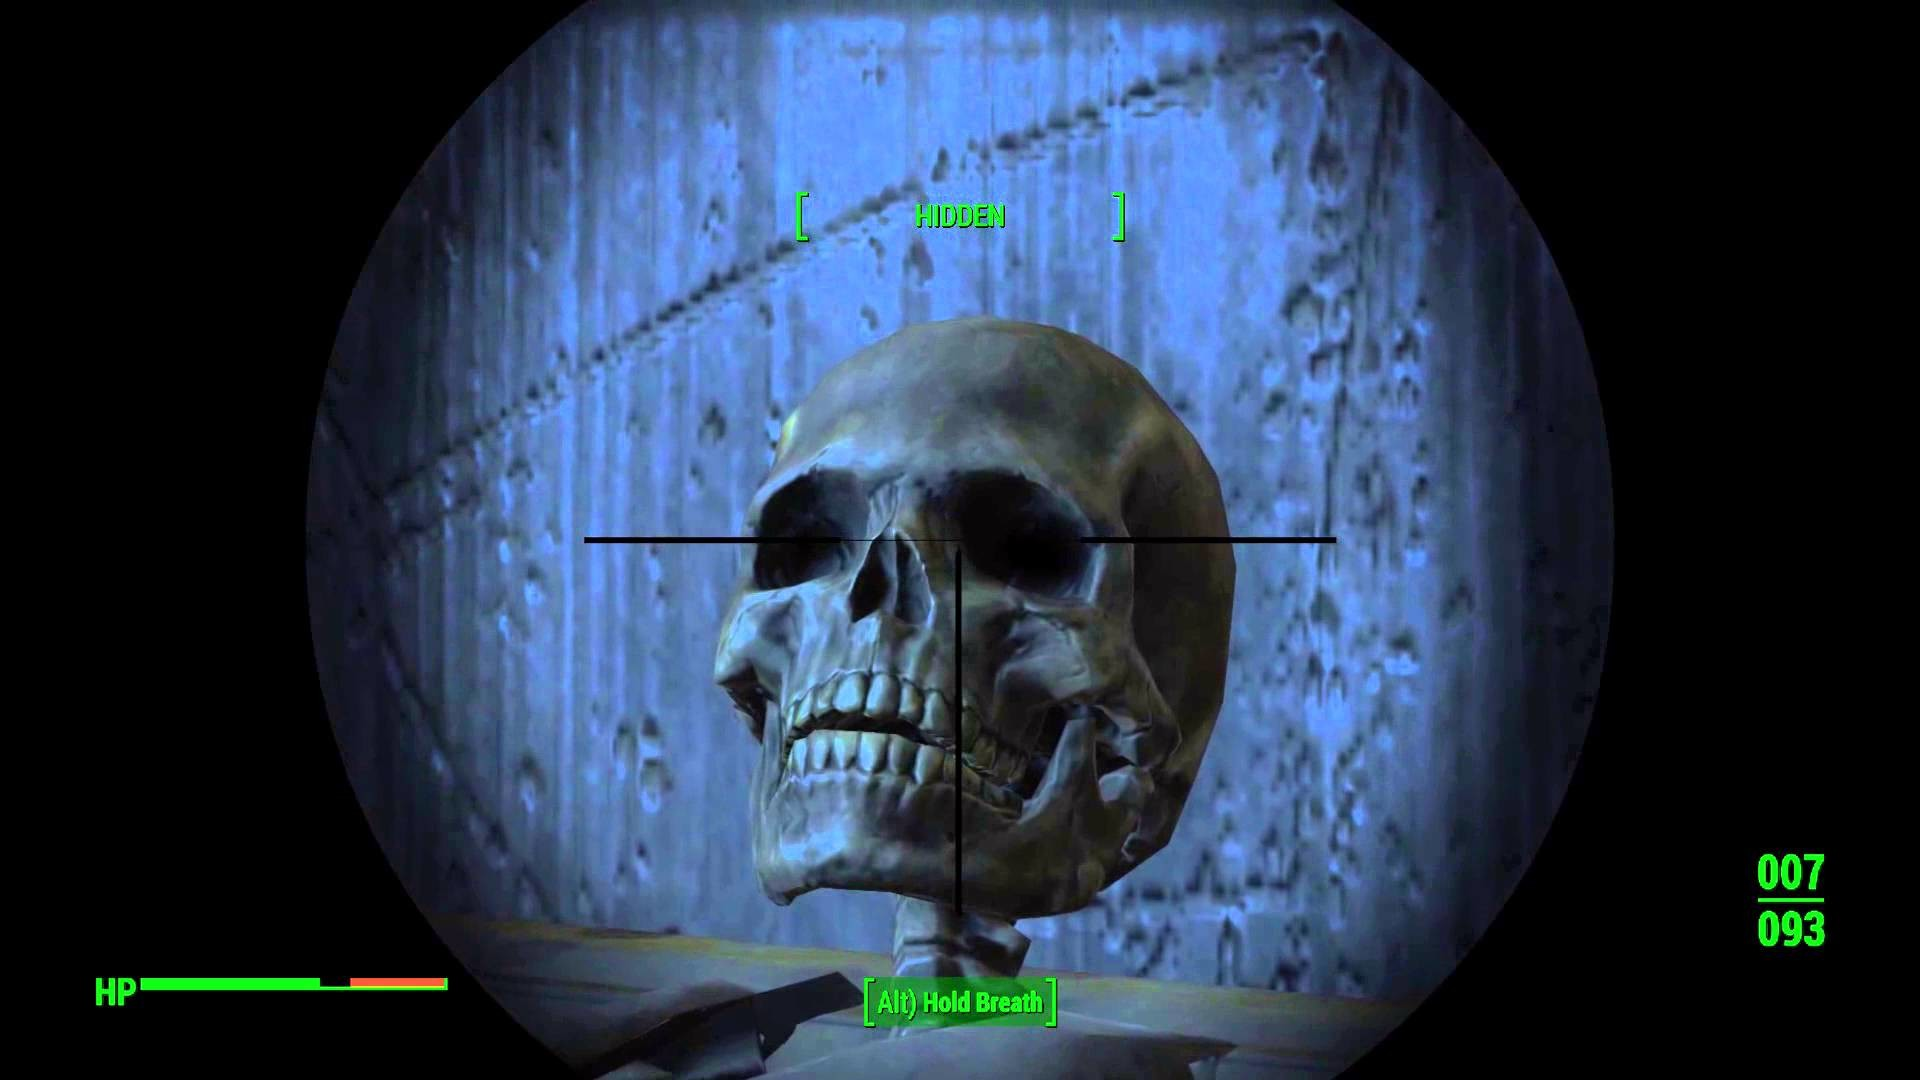 Fallout 4 spooky scary skeletons. Glitch? Idk